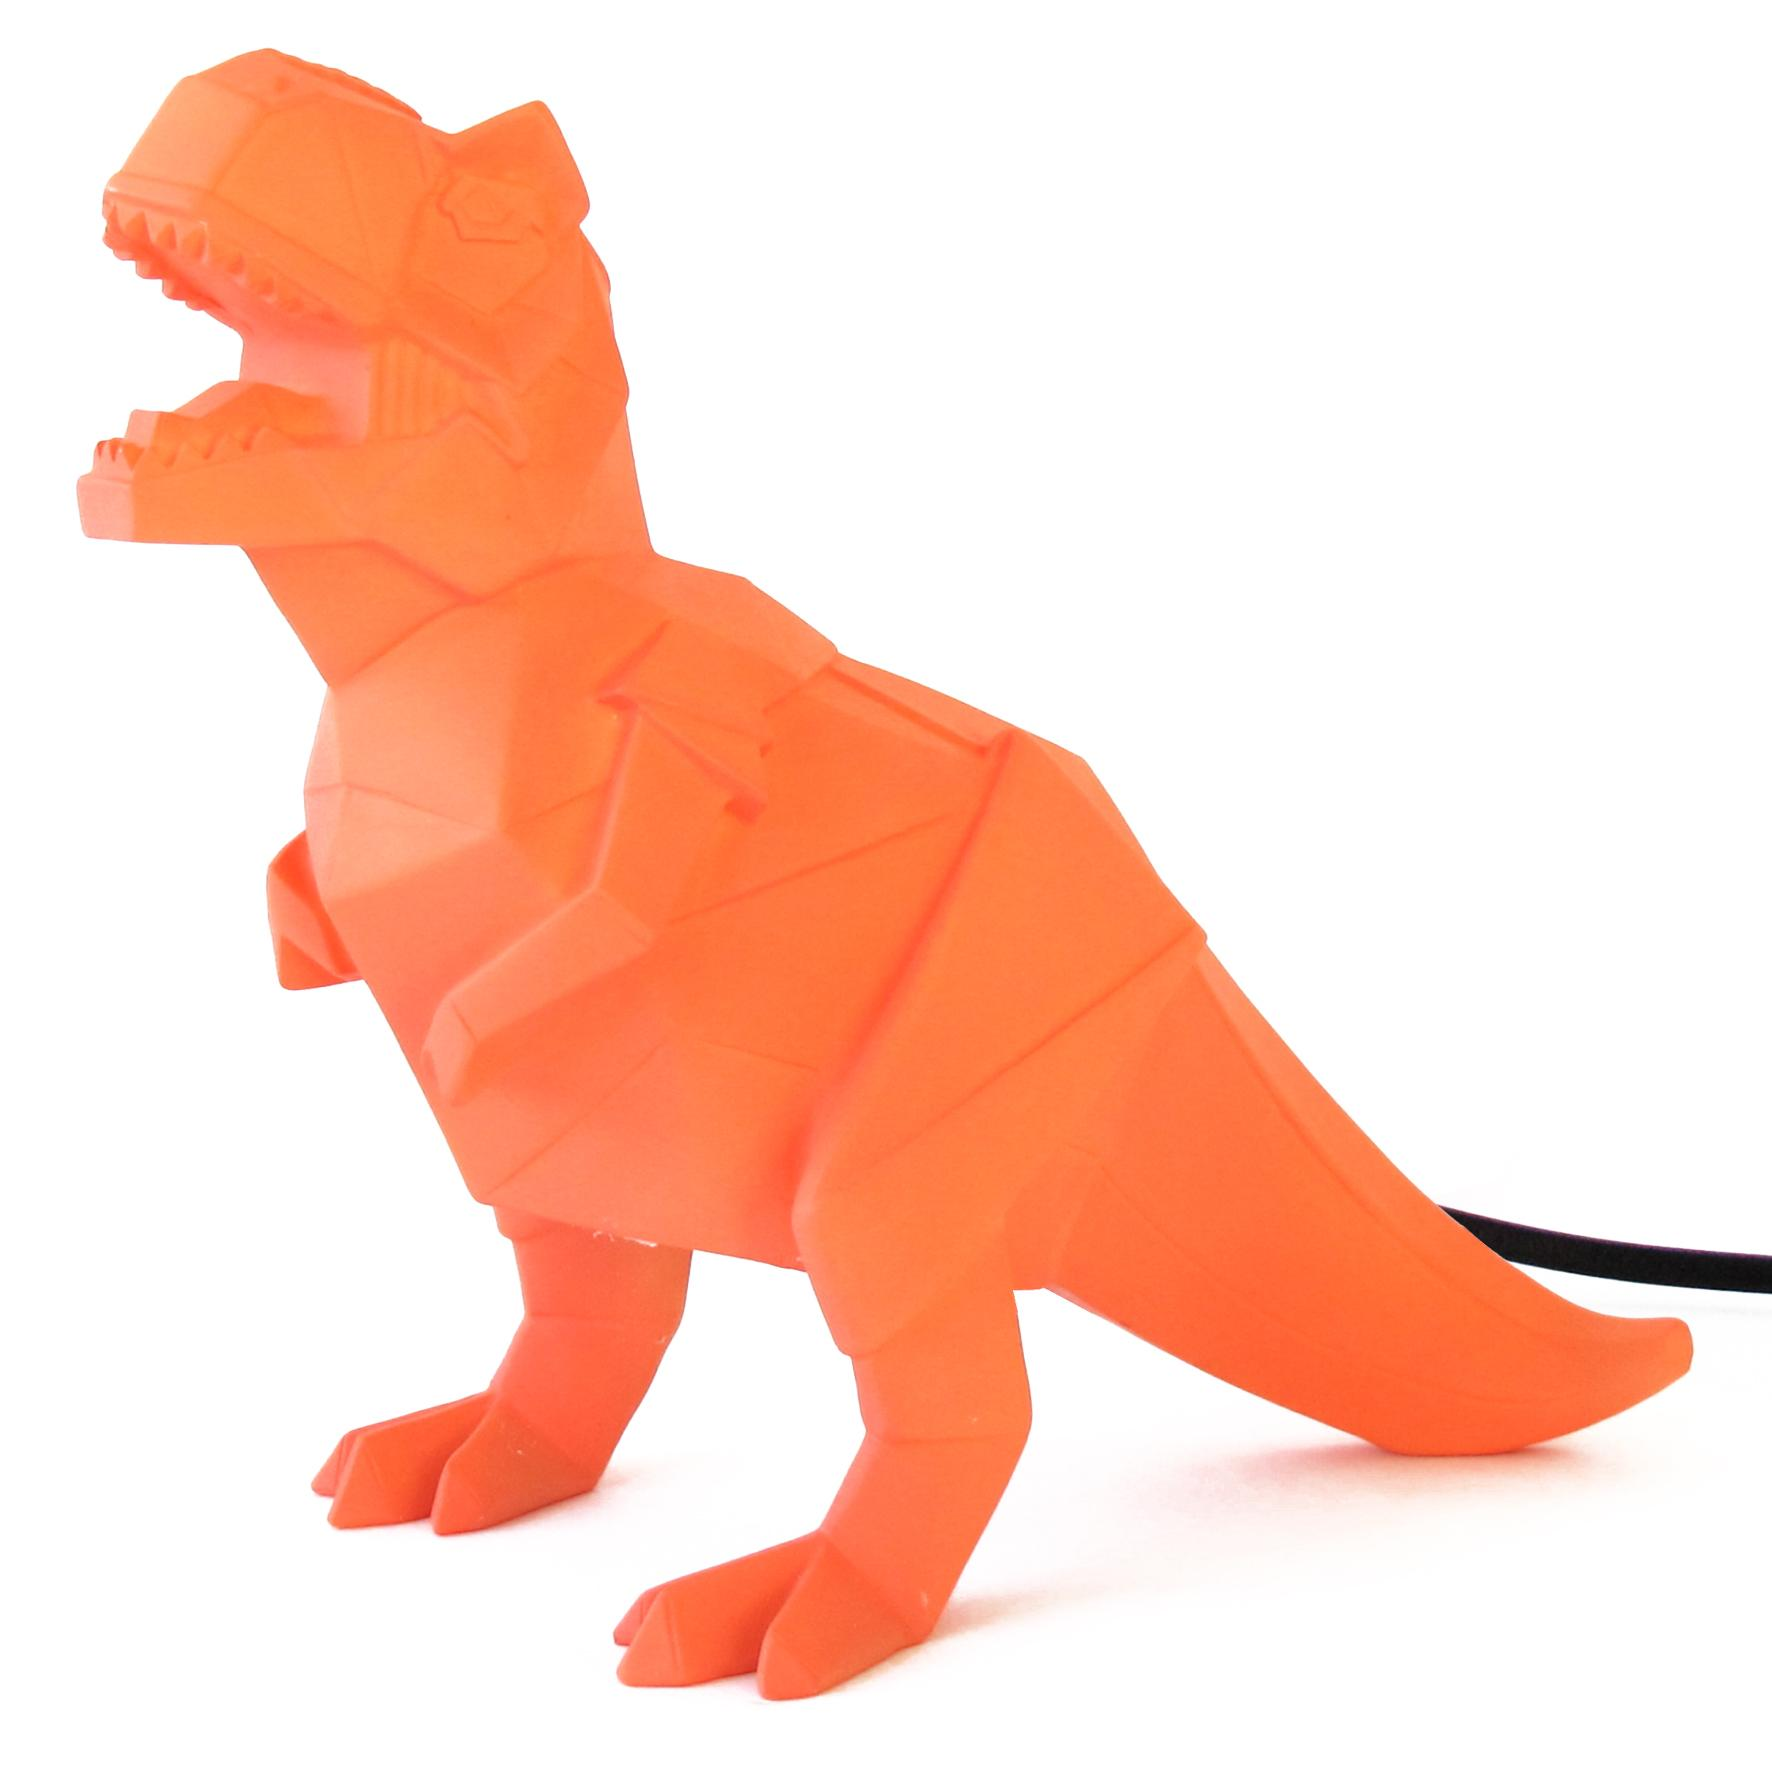 T Rex Dinosaur Origami Lamp From The Gifted Few